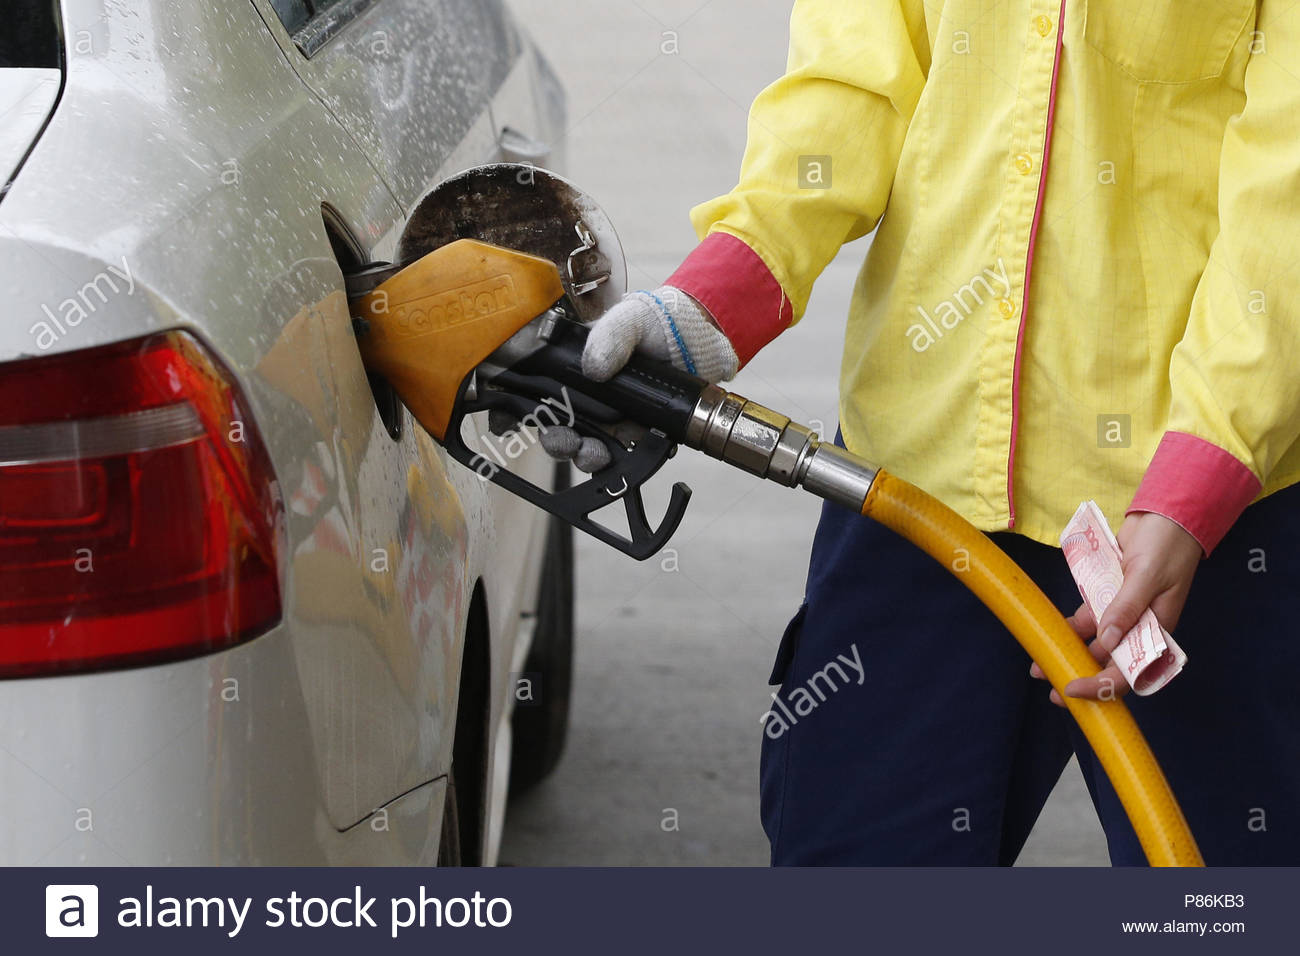 july 2018 diesel price Fuzhou, China. 09th July, 2018. The price of gasoline and diesel  july 2018 diesel price